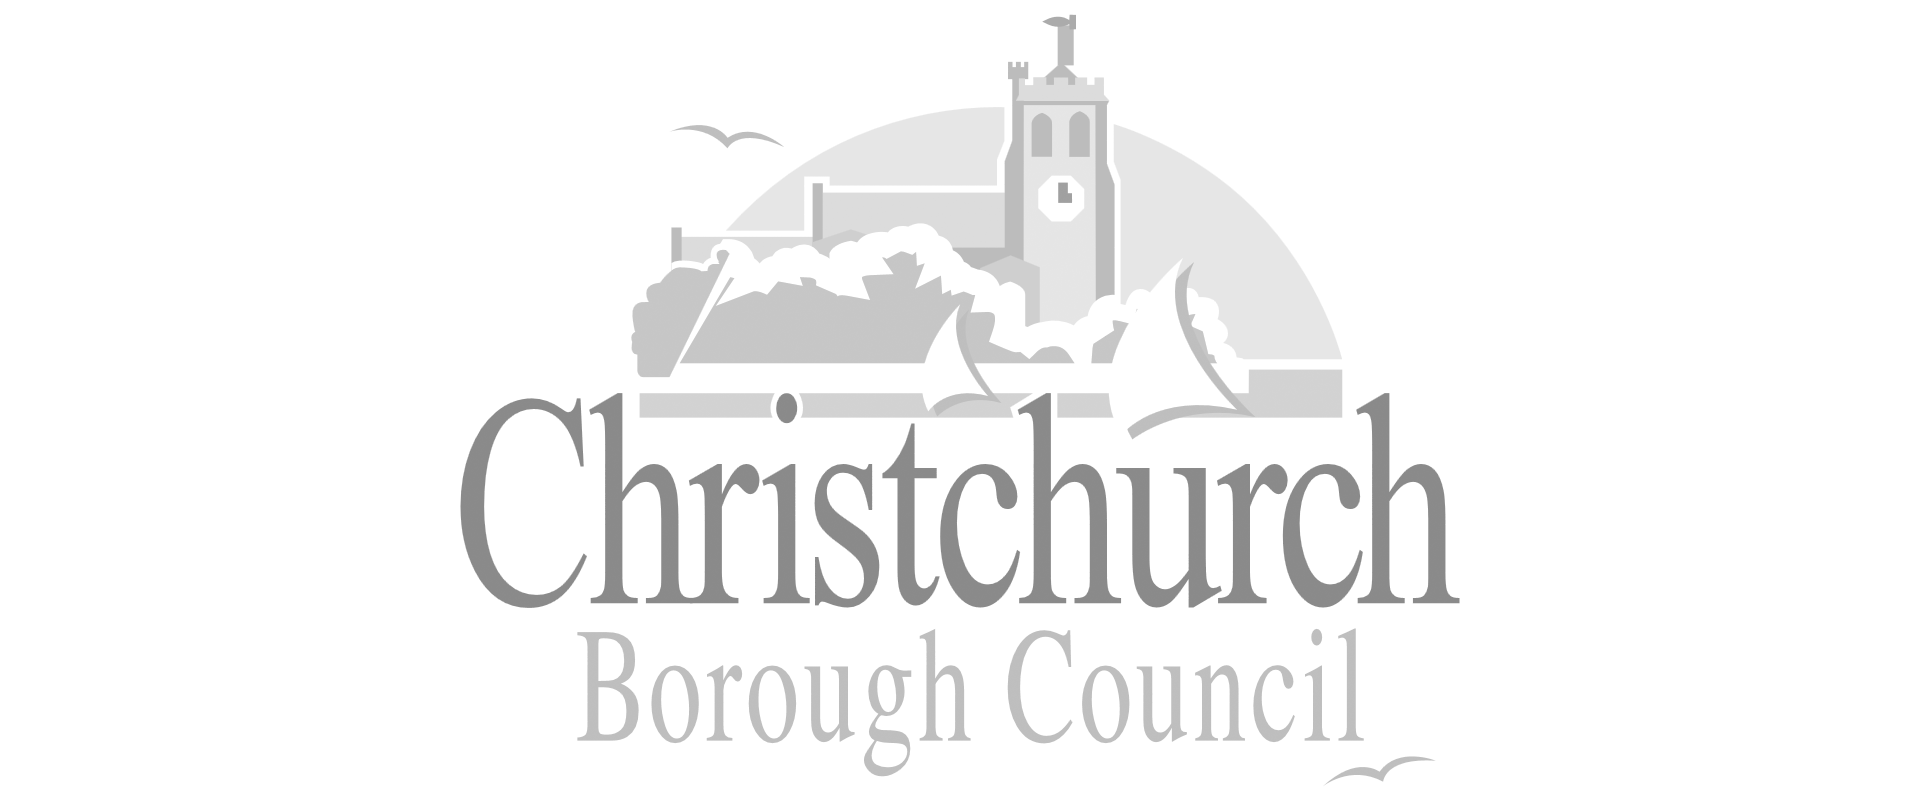 Studio 2 Media have produced for Christchurch Council